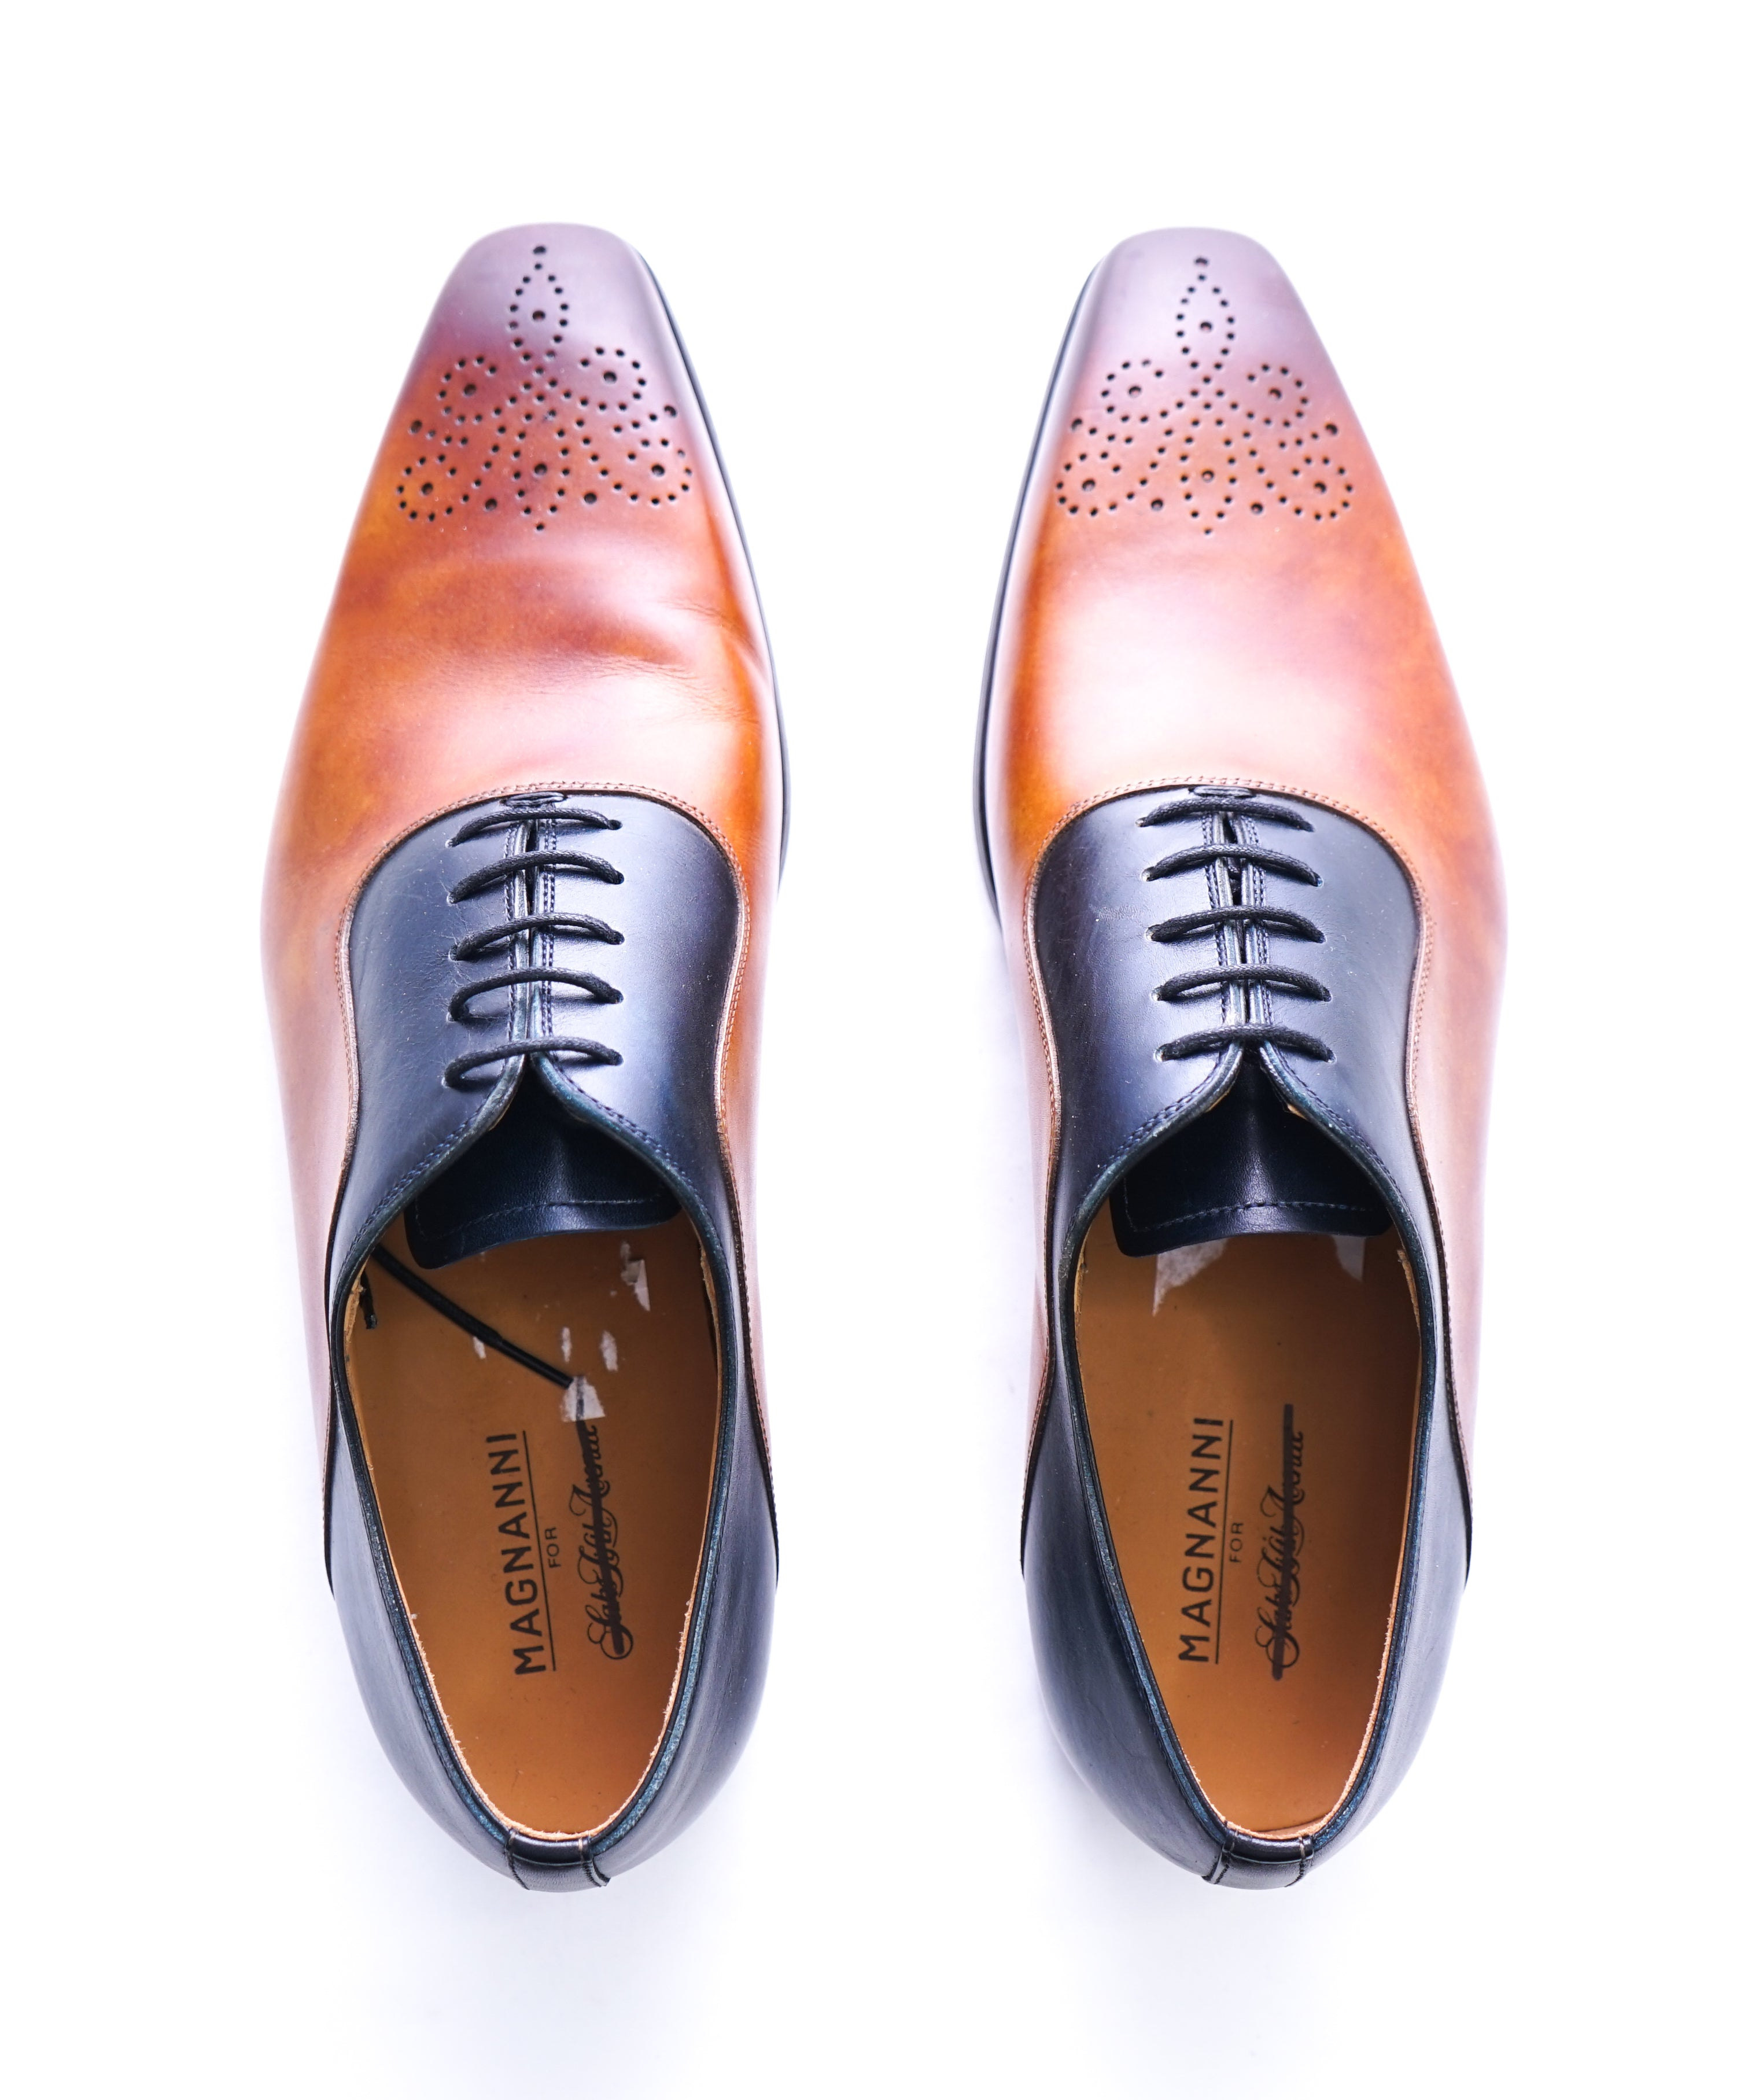 MAGNANNI - Slim Silhouette Detailed Brown & Navy Bi-Color Oxfords -  8